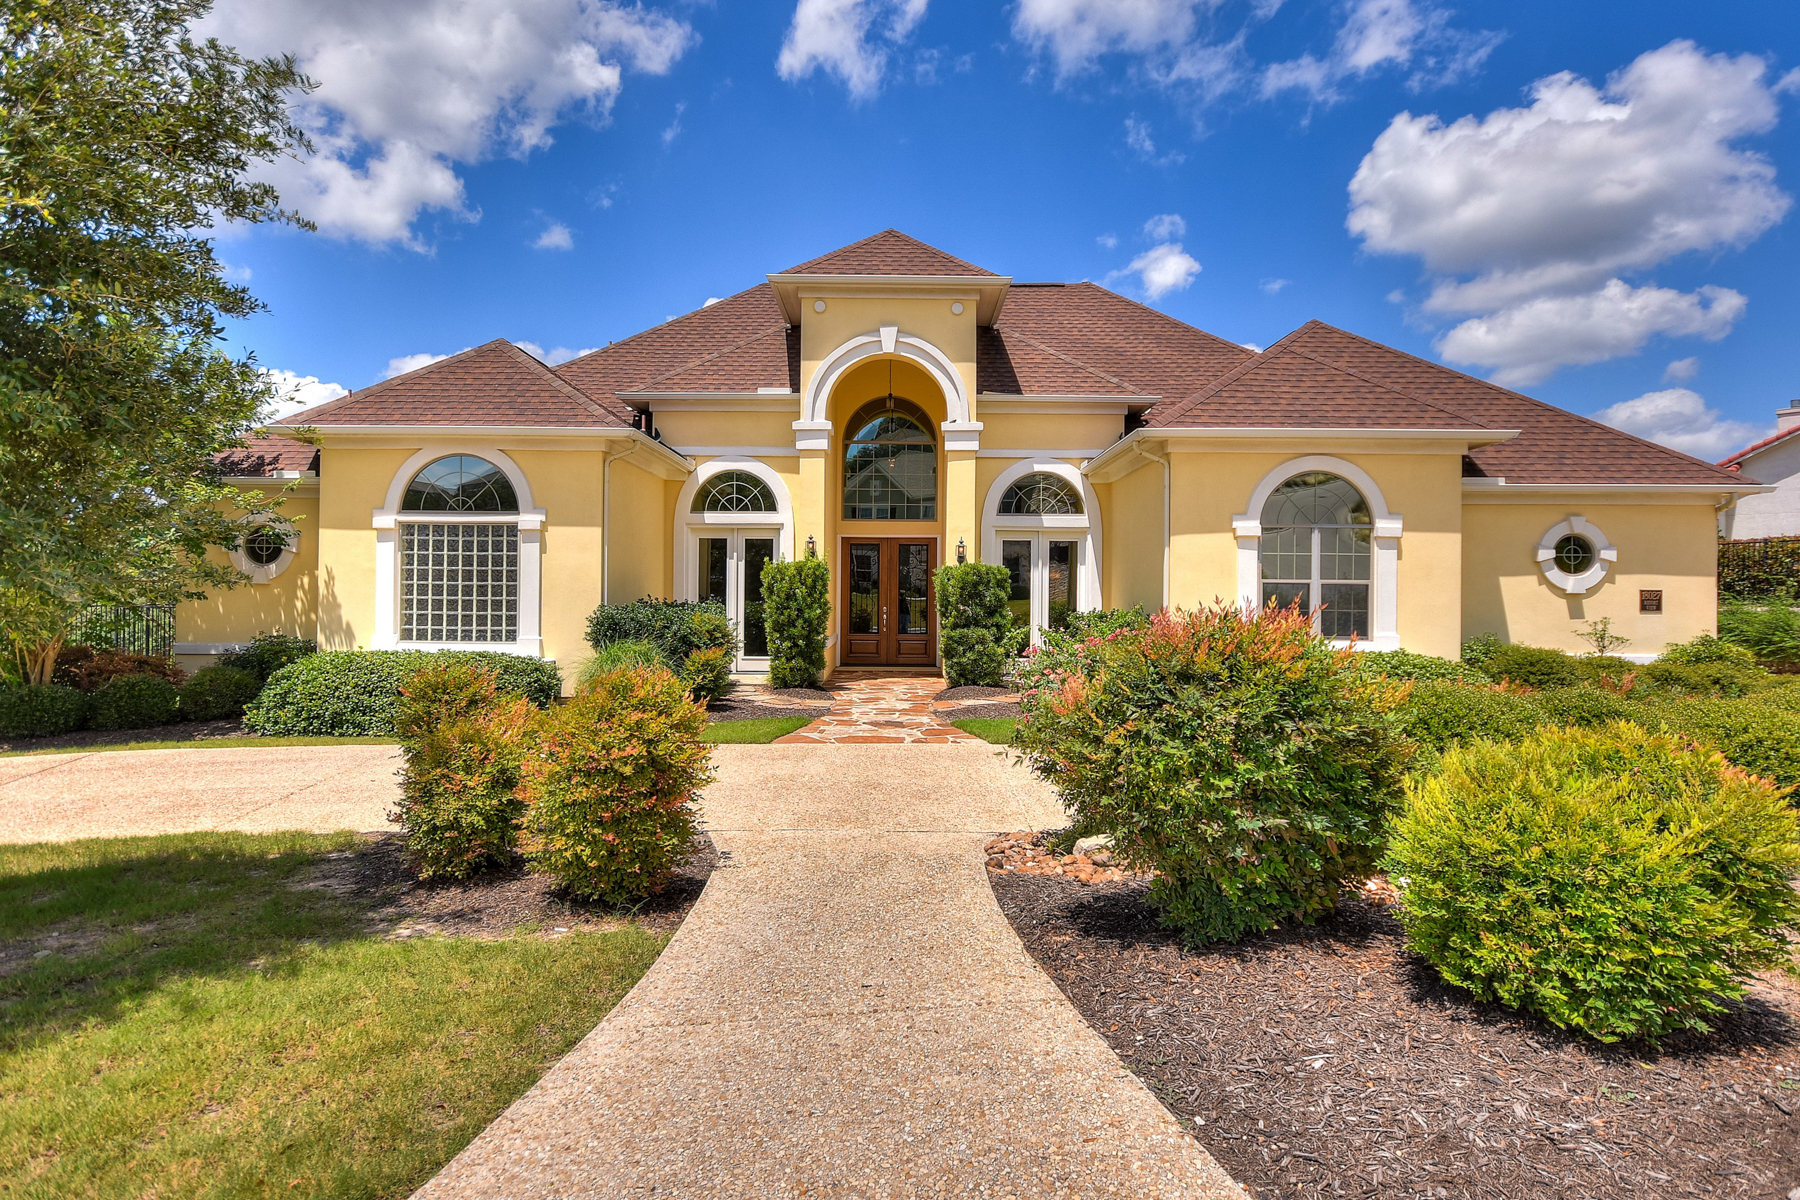 Single Family Home for Sale at Stunning Home in The Estates of Sonoma Verde 18027 Resort Vw San Antonio, Texas, 78255 United States